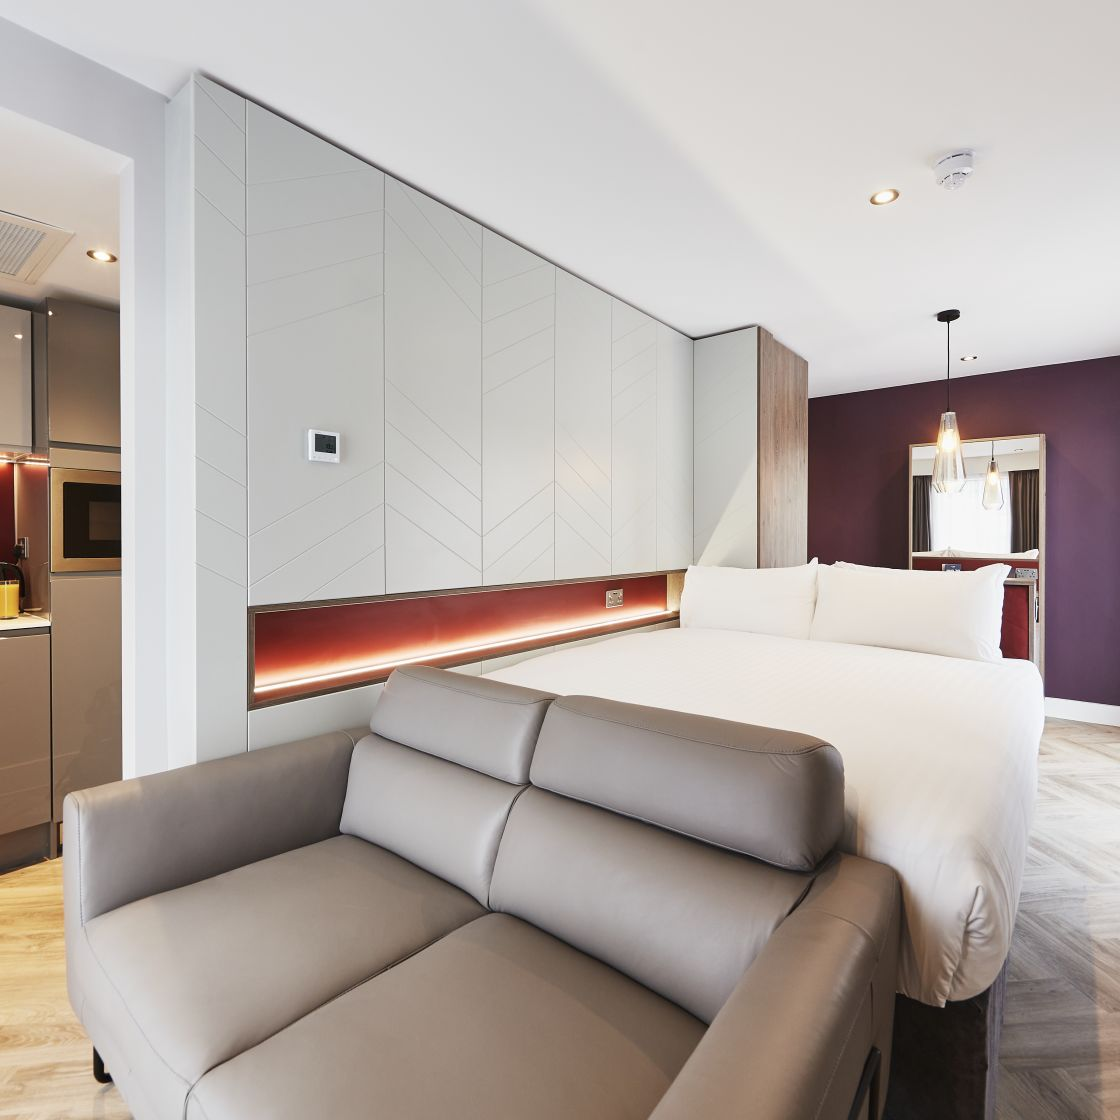 Neo Studio Student Apartment in Newcastle. King Size Bed, Sofa and Kitchen. IconInc @ Roomzzz